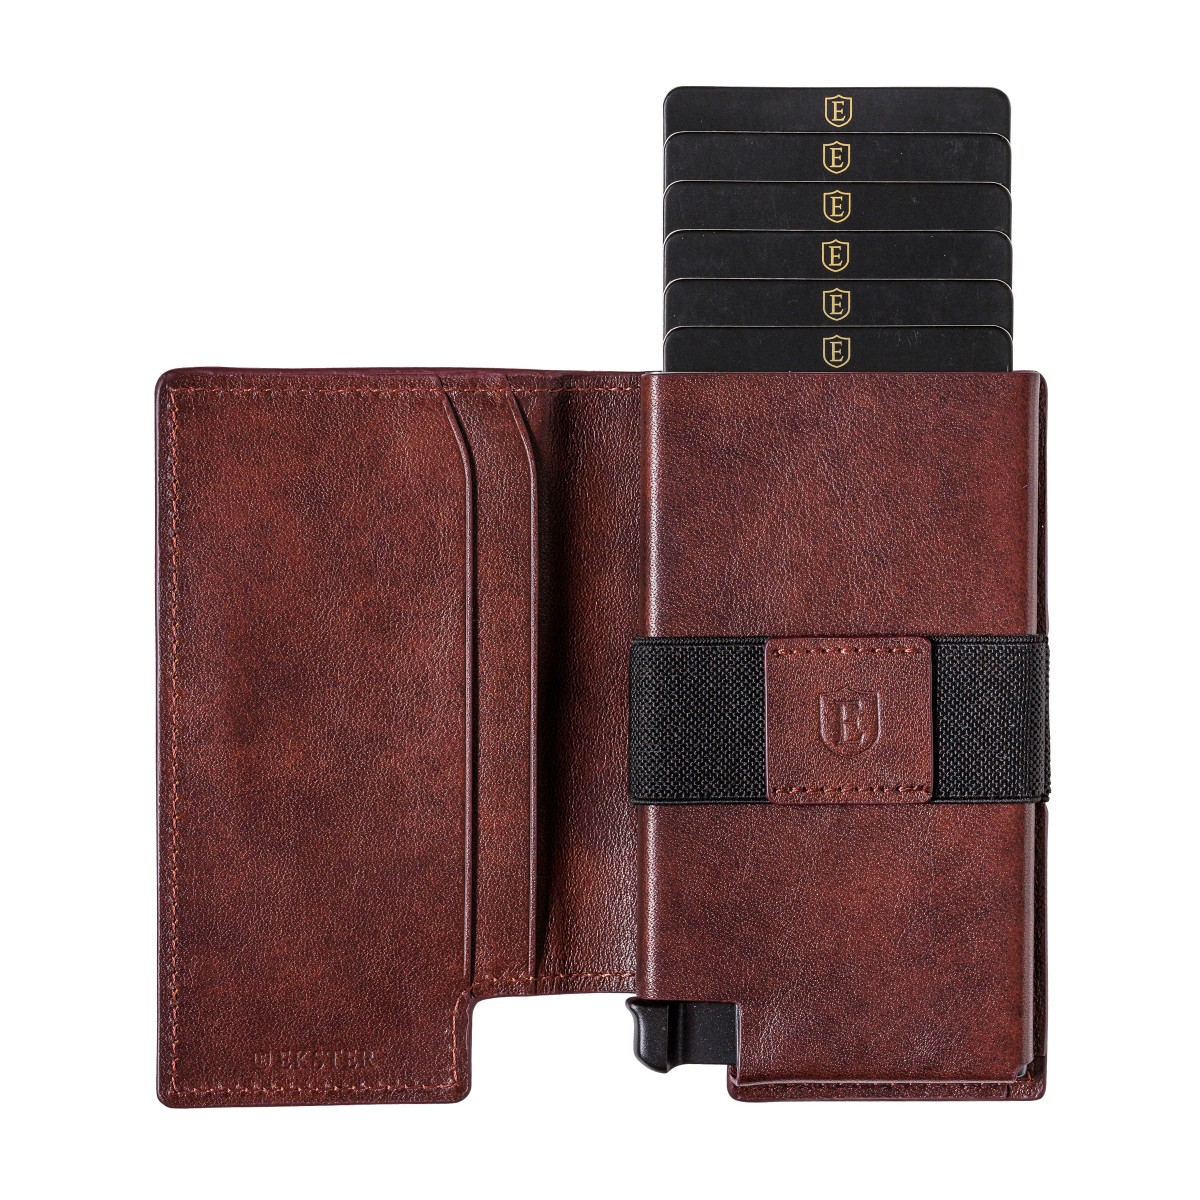 Best gifts for dads – Ekster Parliament Slim Leather Wallet